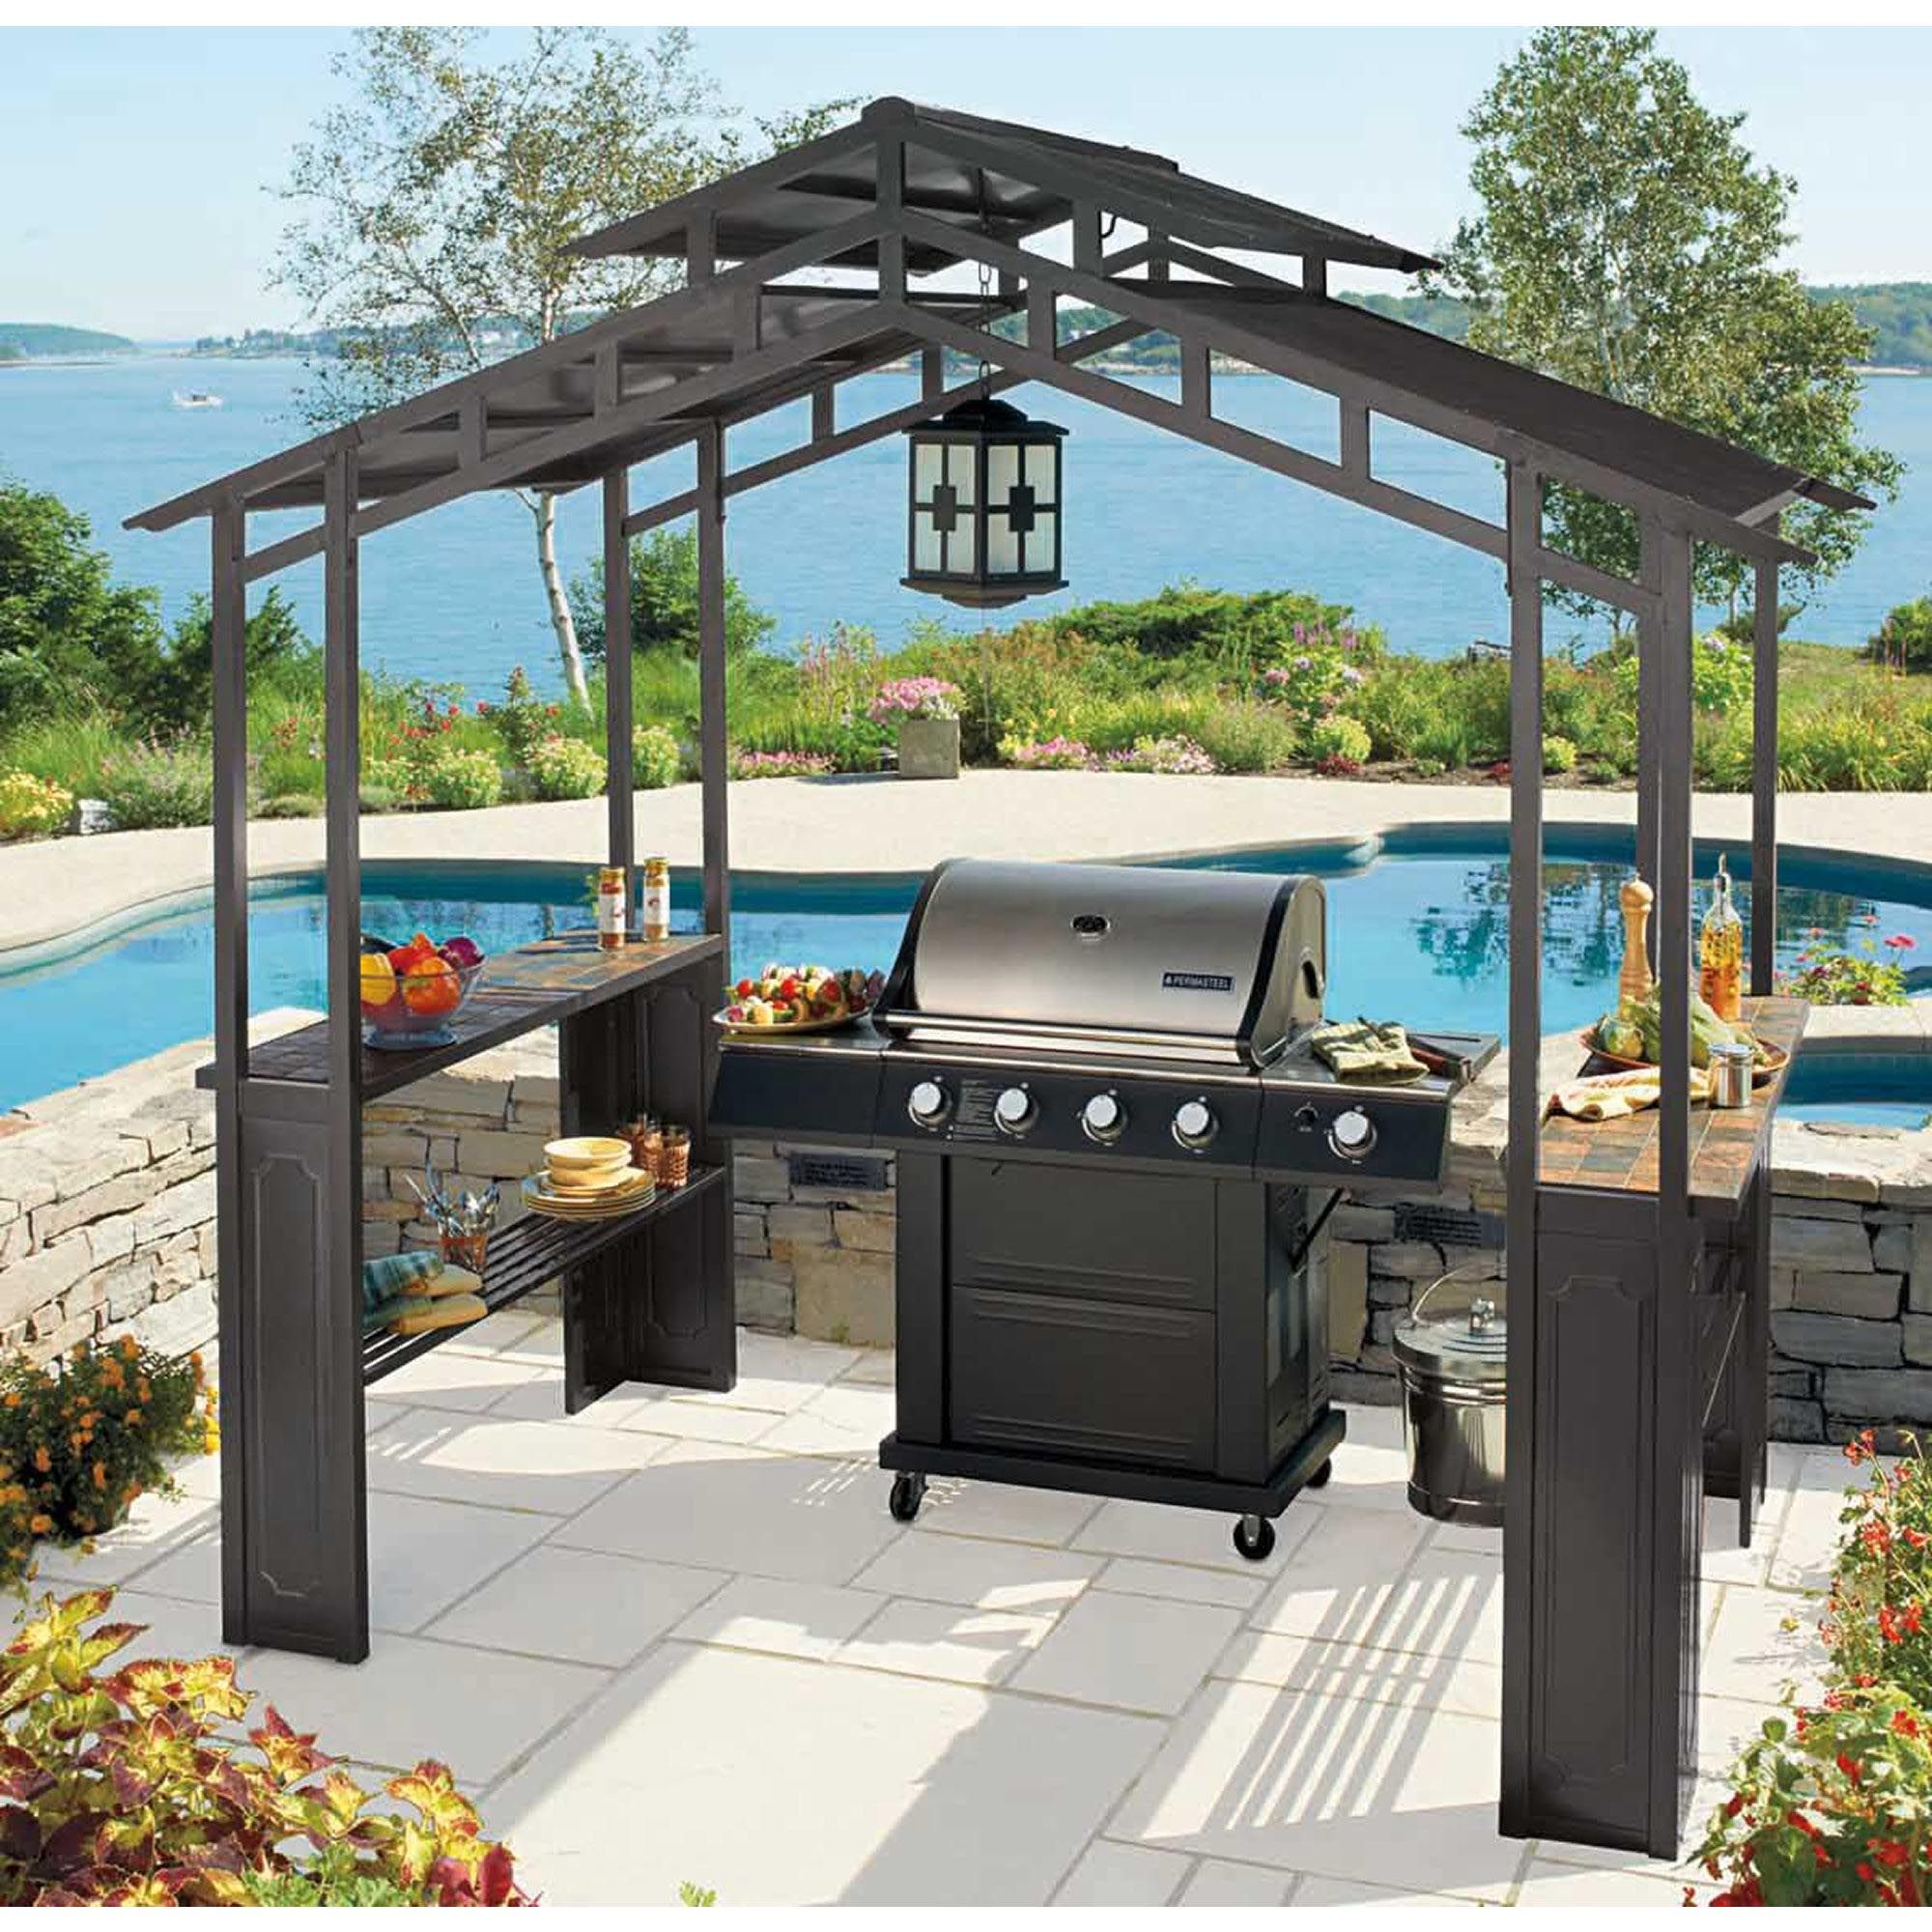 Living Home Outdoors Aluminum Hardtop Grill Gazebo | Grill ...